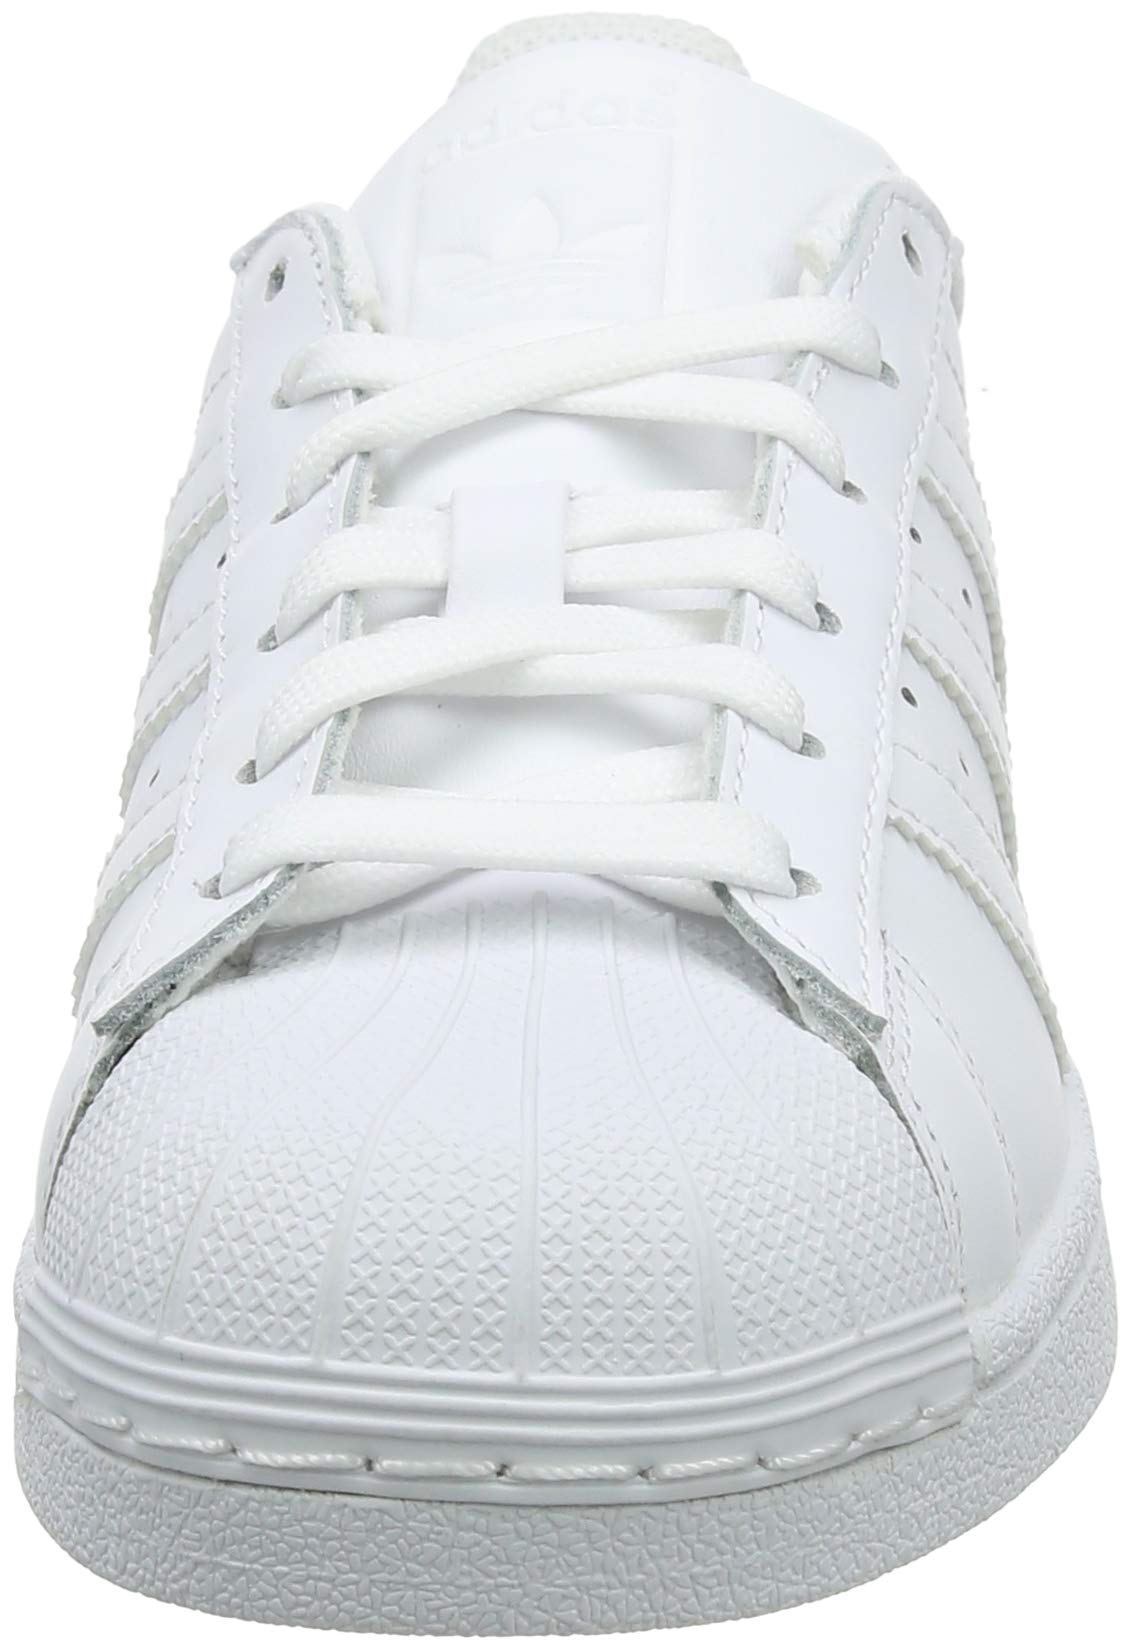 adidas Originals Superstar BB2872, Sneakers Unisex - Bambini 4 spesavip